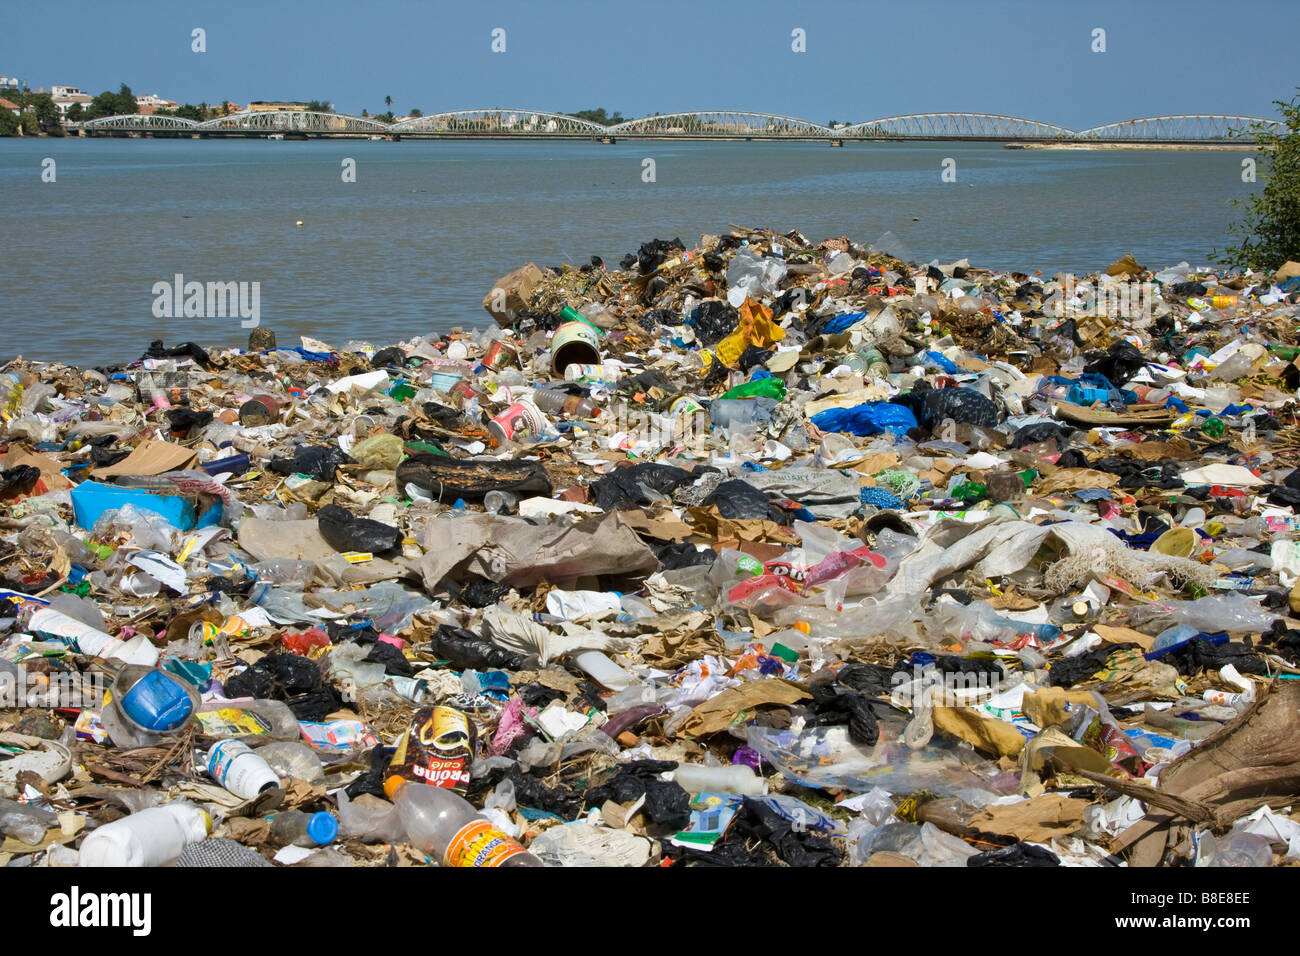 Pollution Waste and the Faidherbe Bridge in St Louis in Senegal Africa - Stock Image